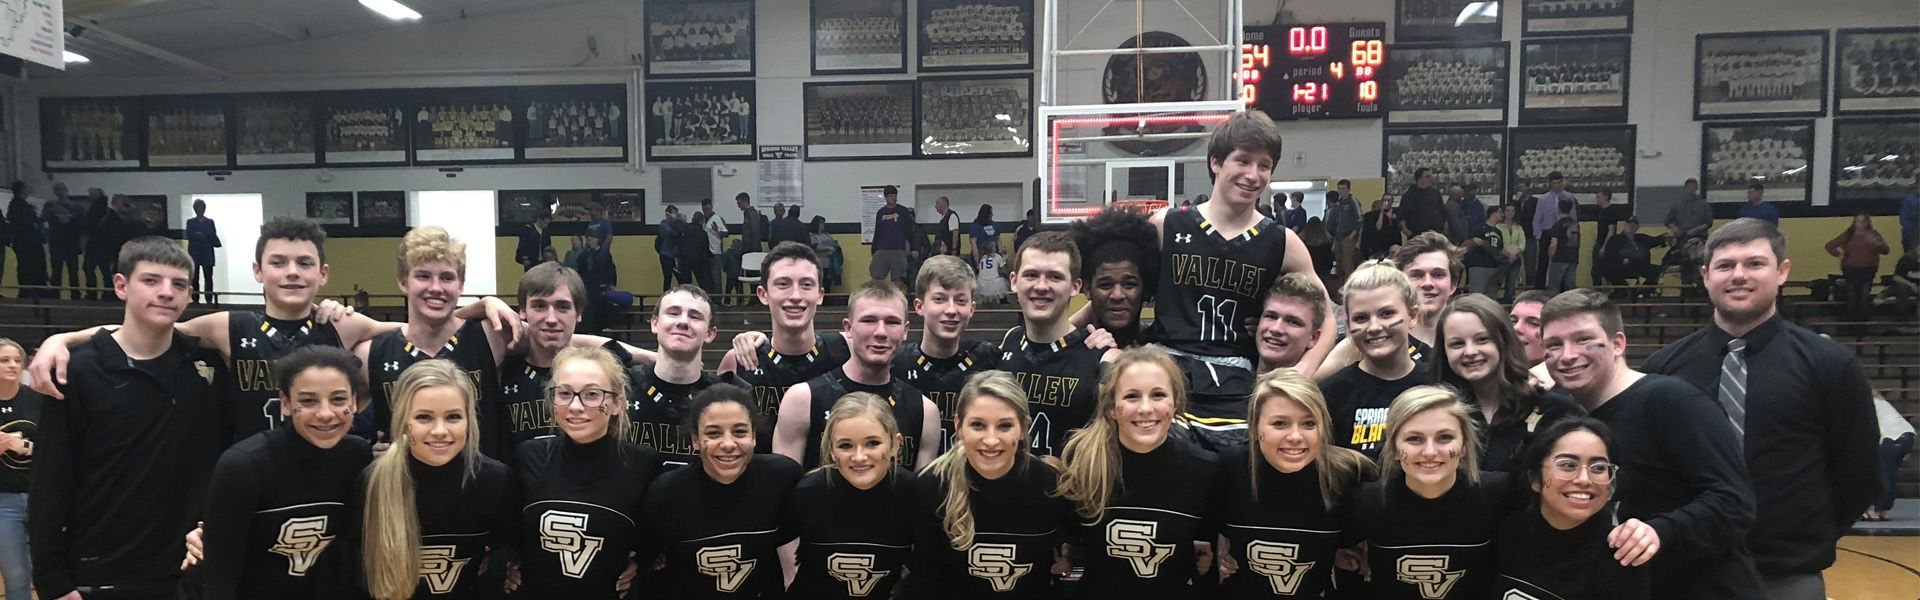 2018 Bball Section Win